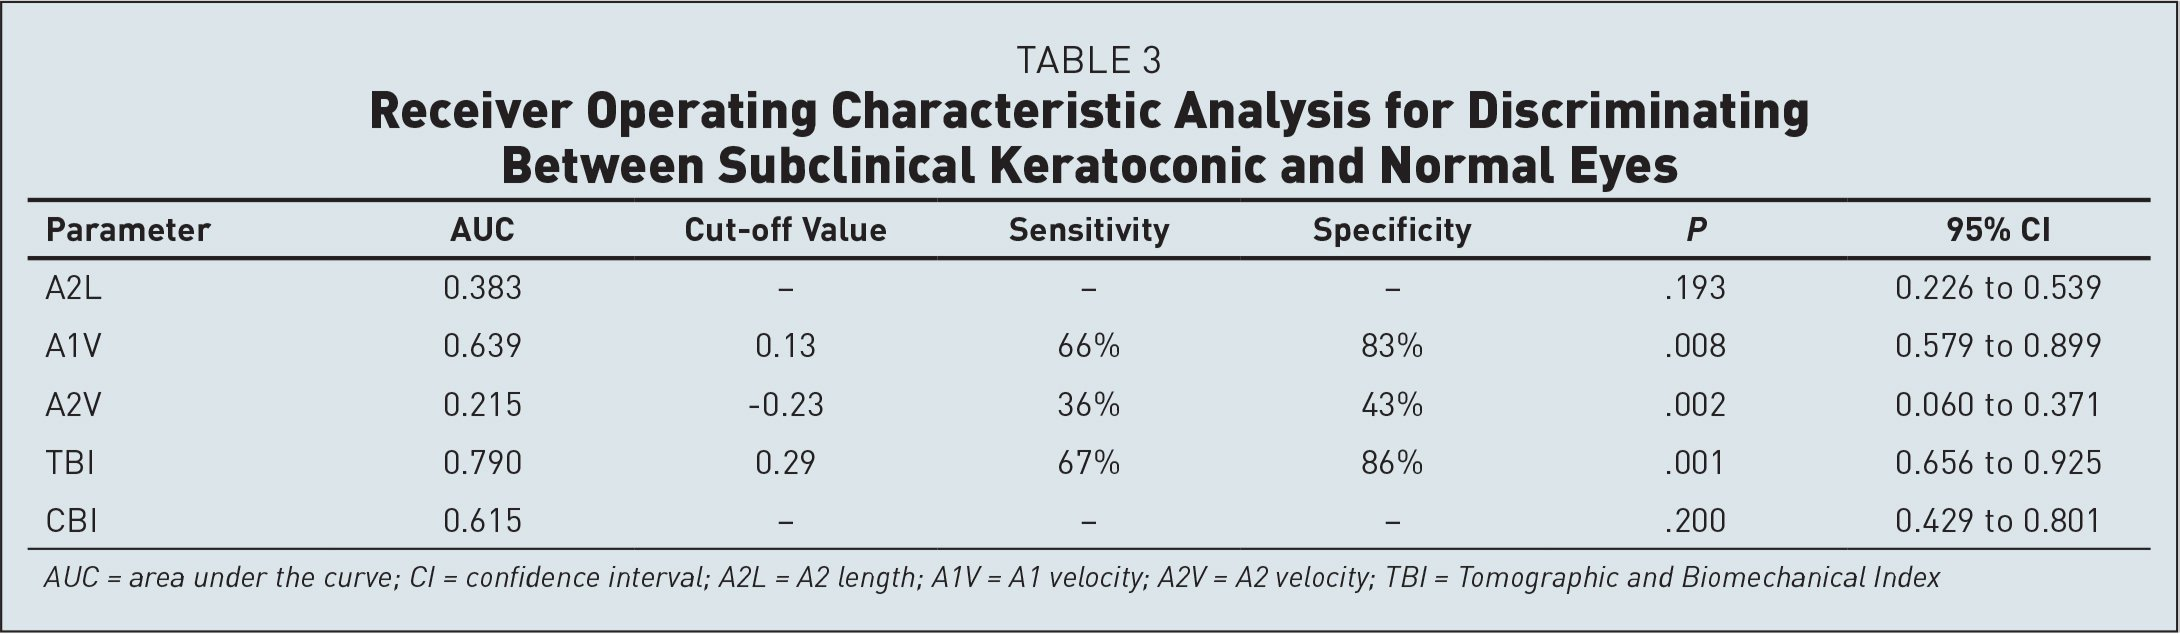 Receiver Operating Characteristic Analysis for Discriminating Between Subclinical Keratoconic and Normal Eyes